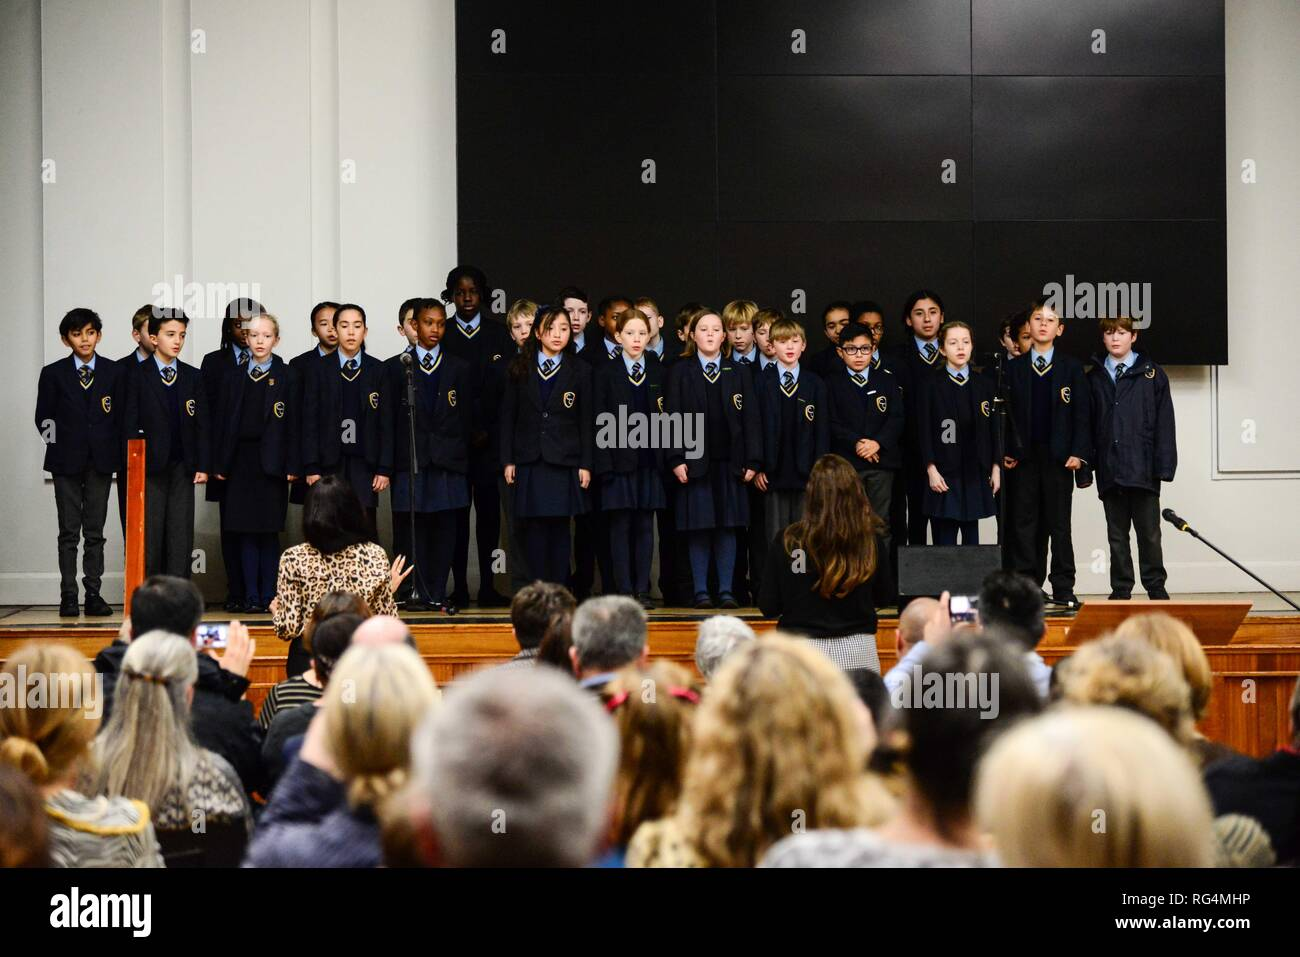 "London,UK. 27th Jan 2019.  Corpus Christi school choir perform  at a Holocaust Memorial Day ceremony held at Lambeth Assembly Hall.The theme for 2019 set by the Holocaust Memorial Day Trust is ""Torn from Home"".  Lambeth Council has agreed to resettle 28 families from the camps around Syria as well as  from other countries in the region. 25 families have arrived since April 2016. Credit: Claire Doherty/Alamy Live News Stock Photo"